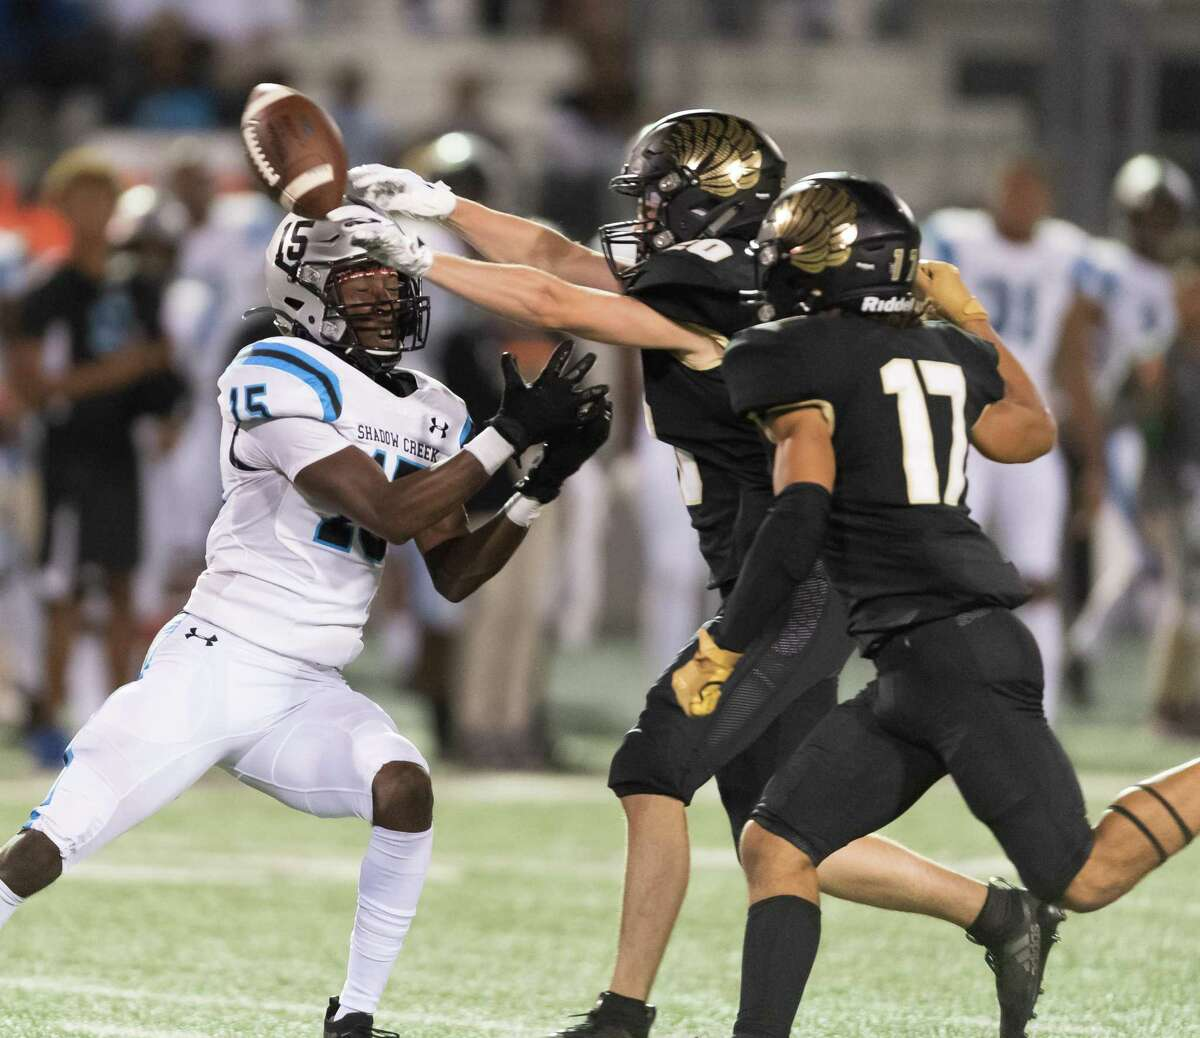 Ethan Kappes (20) of the Foster Falcons breaks up a pass to Jared Jackson (15) of the Shadow Creek Sharks in the second half in a high school football game on Thursday, October 24, 2019 at Traylor Stadium in Rosenberg Texas.